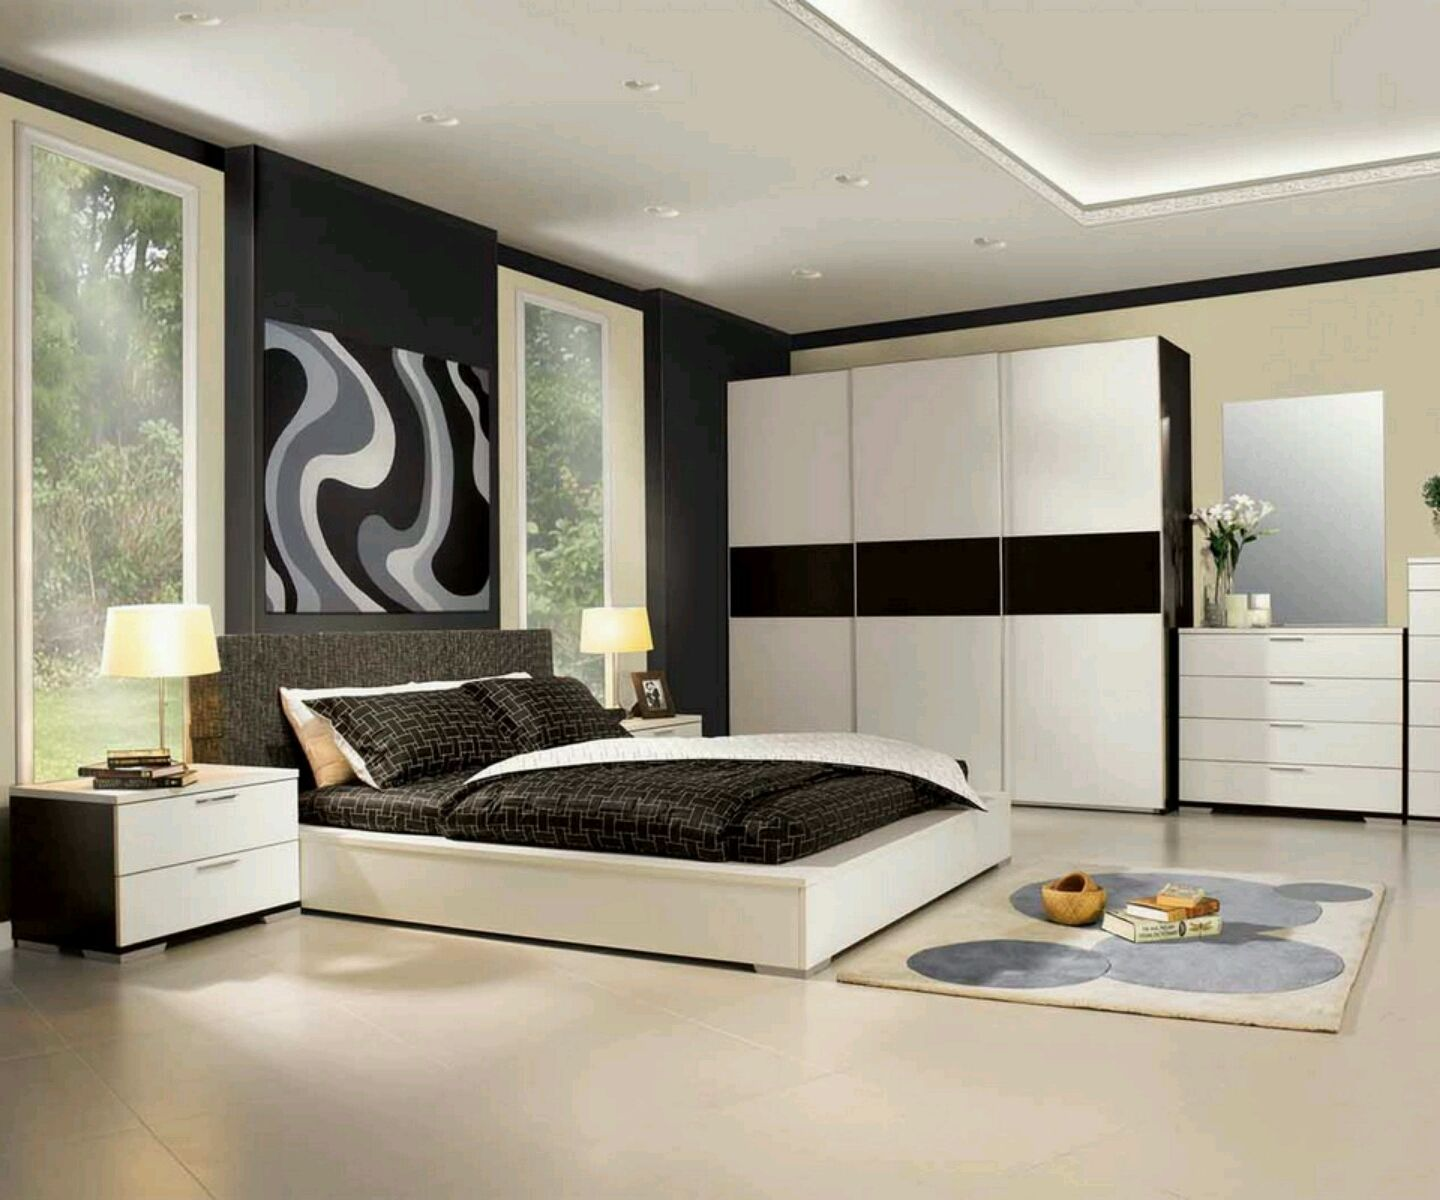 modern bedroom furniture. Modern Bedroom Furniture Design For More Pictures And Ideas, Please Visit My Blog Http://pesonashop.com